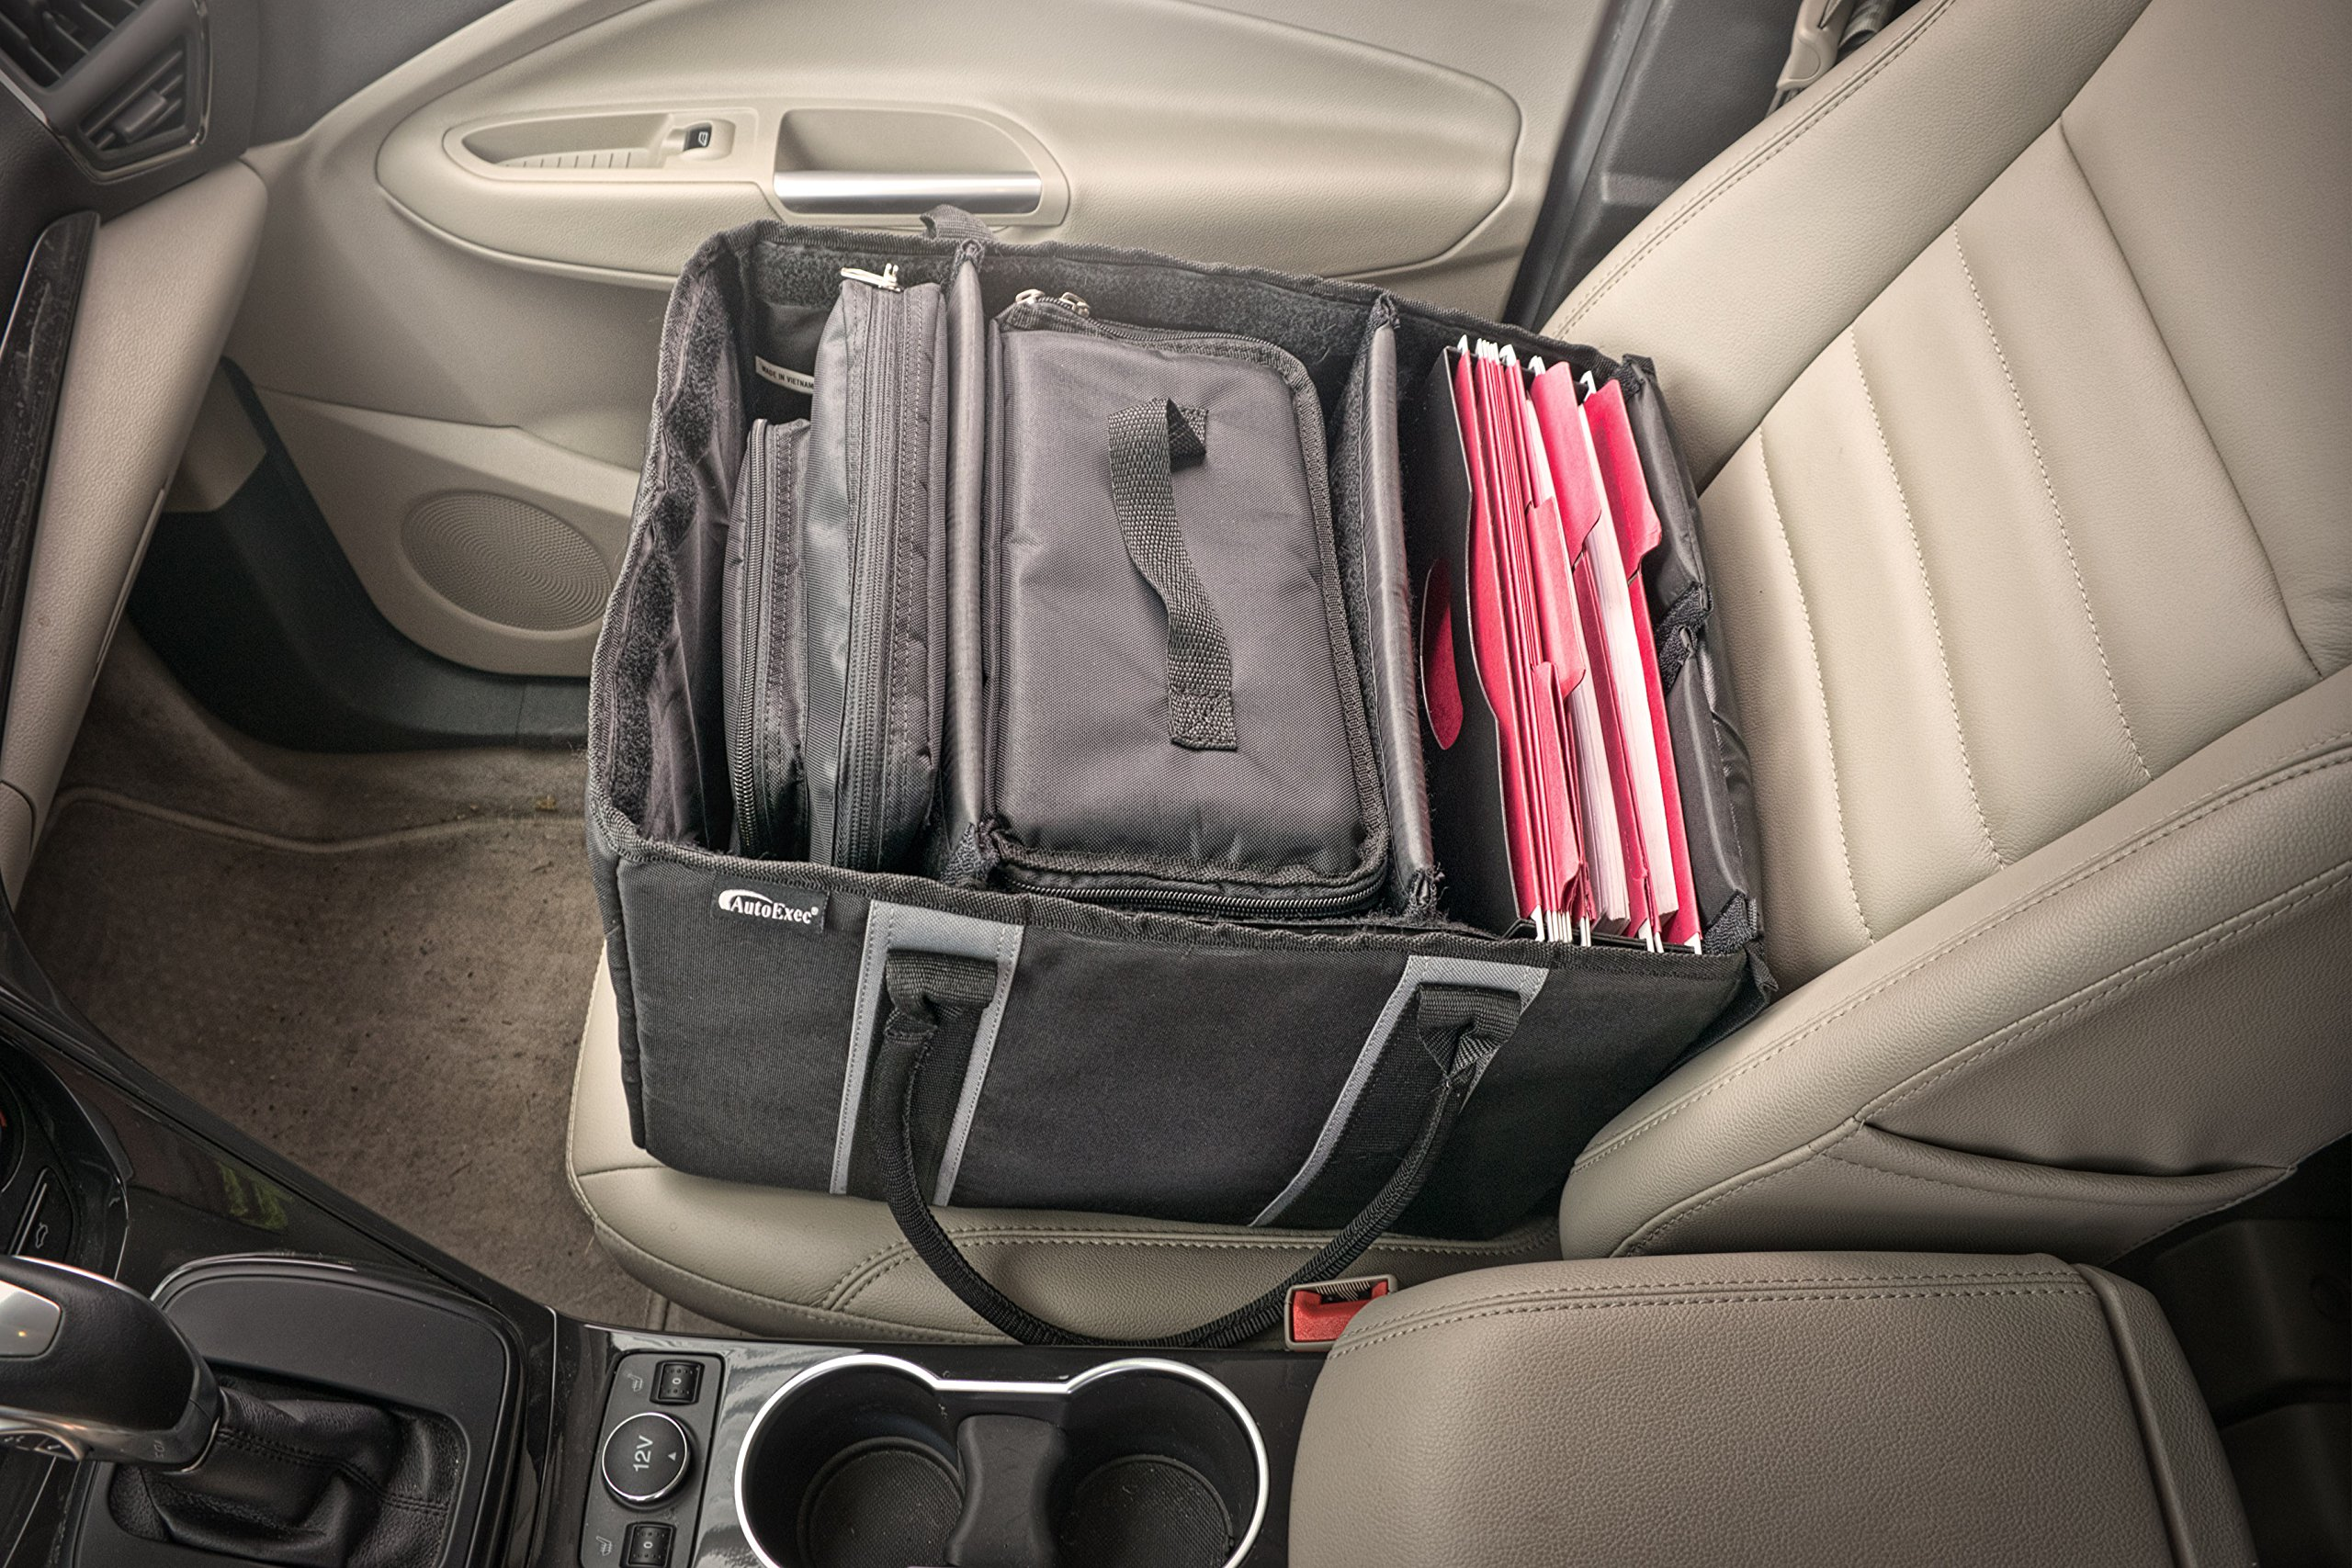 AutoExec AETote-09 Black/Grey File Tote with One Cooler and One Tablet Case by AutoExec (Image #16)